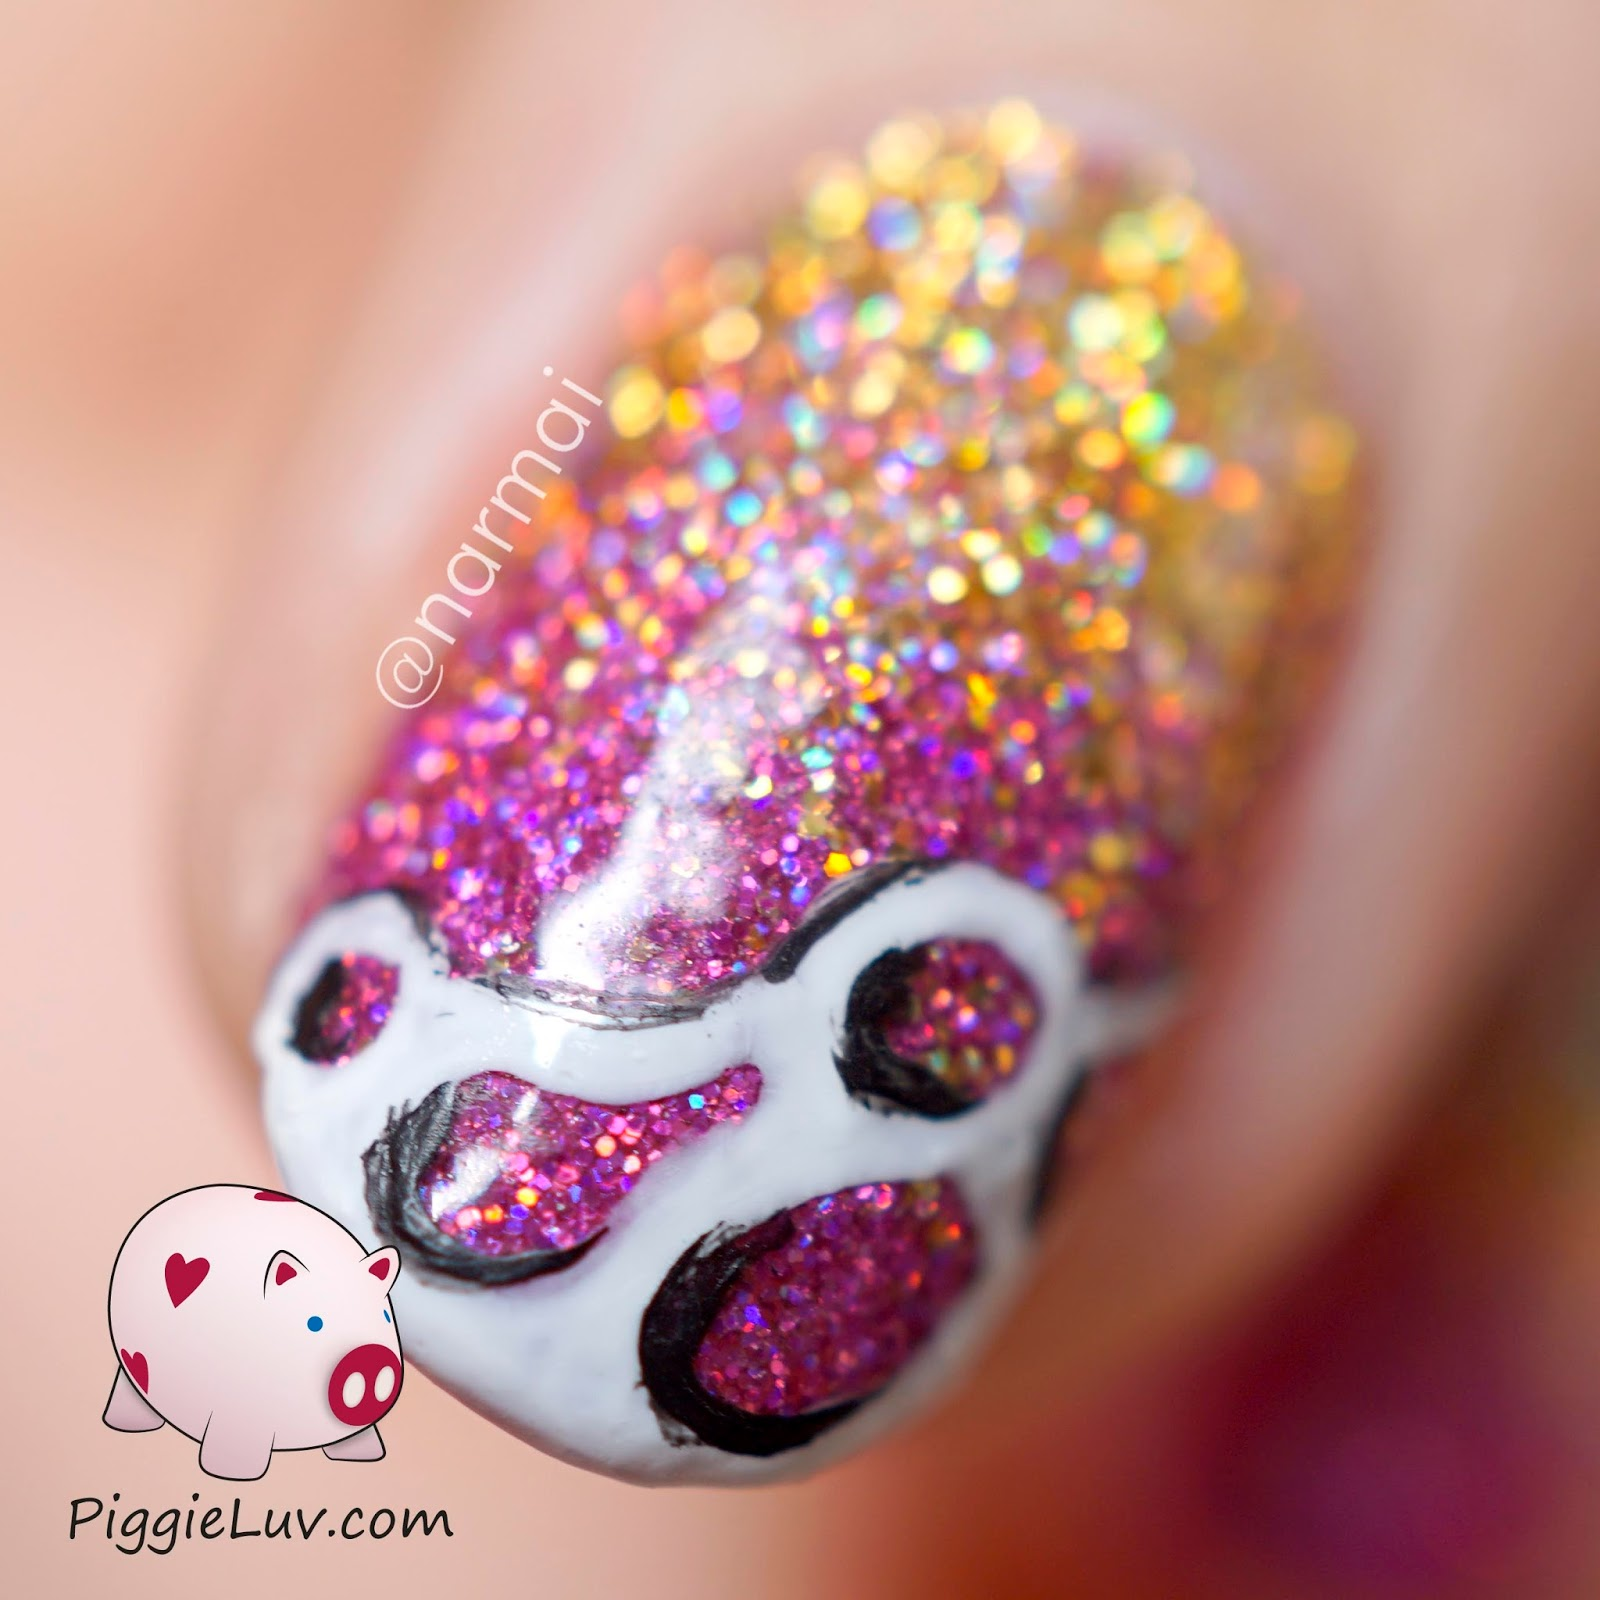 Girly Nail Art: PiggieLuv: Glitter Gradient Nail Art Ft. Girly Bits